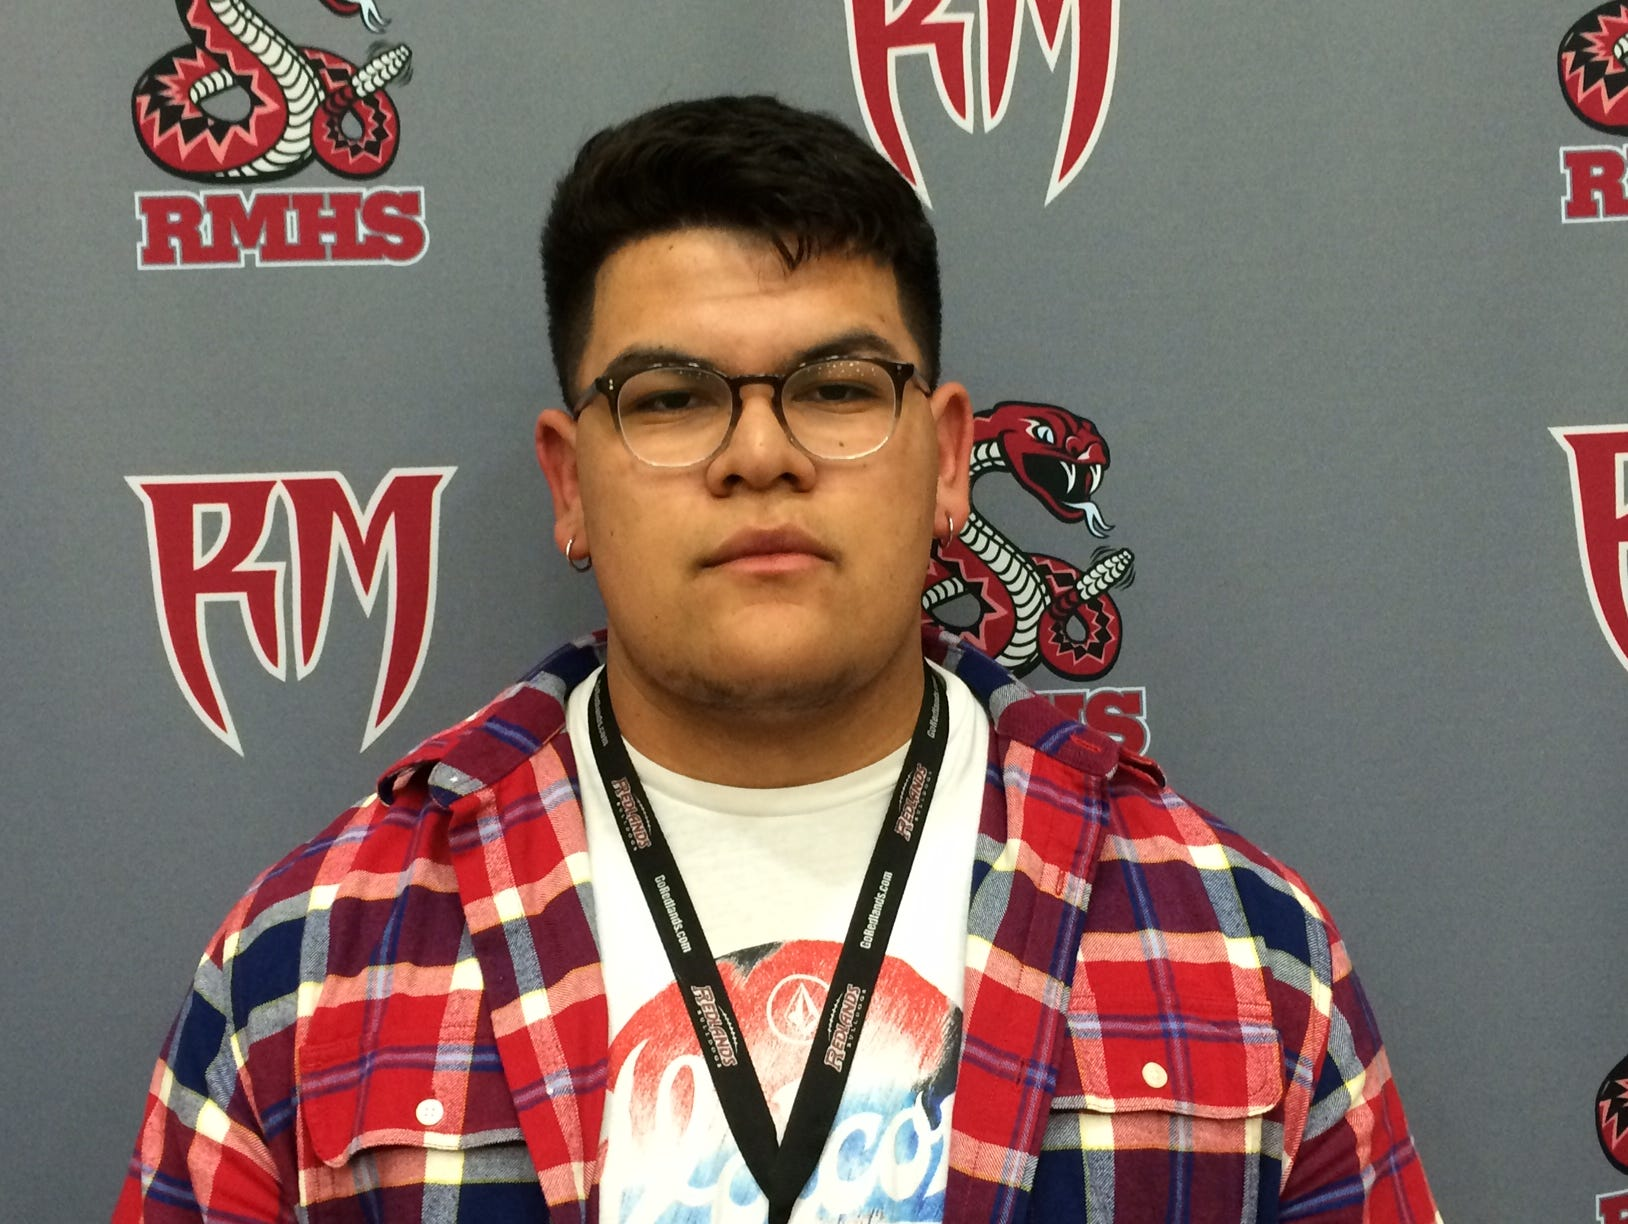 Jonny Avila signed his national letter of intent to play college football at Azusa Pacific.